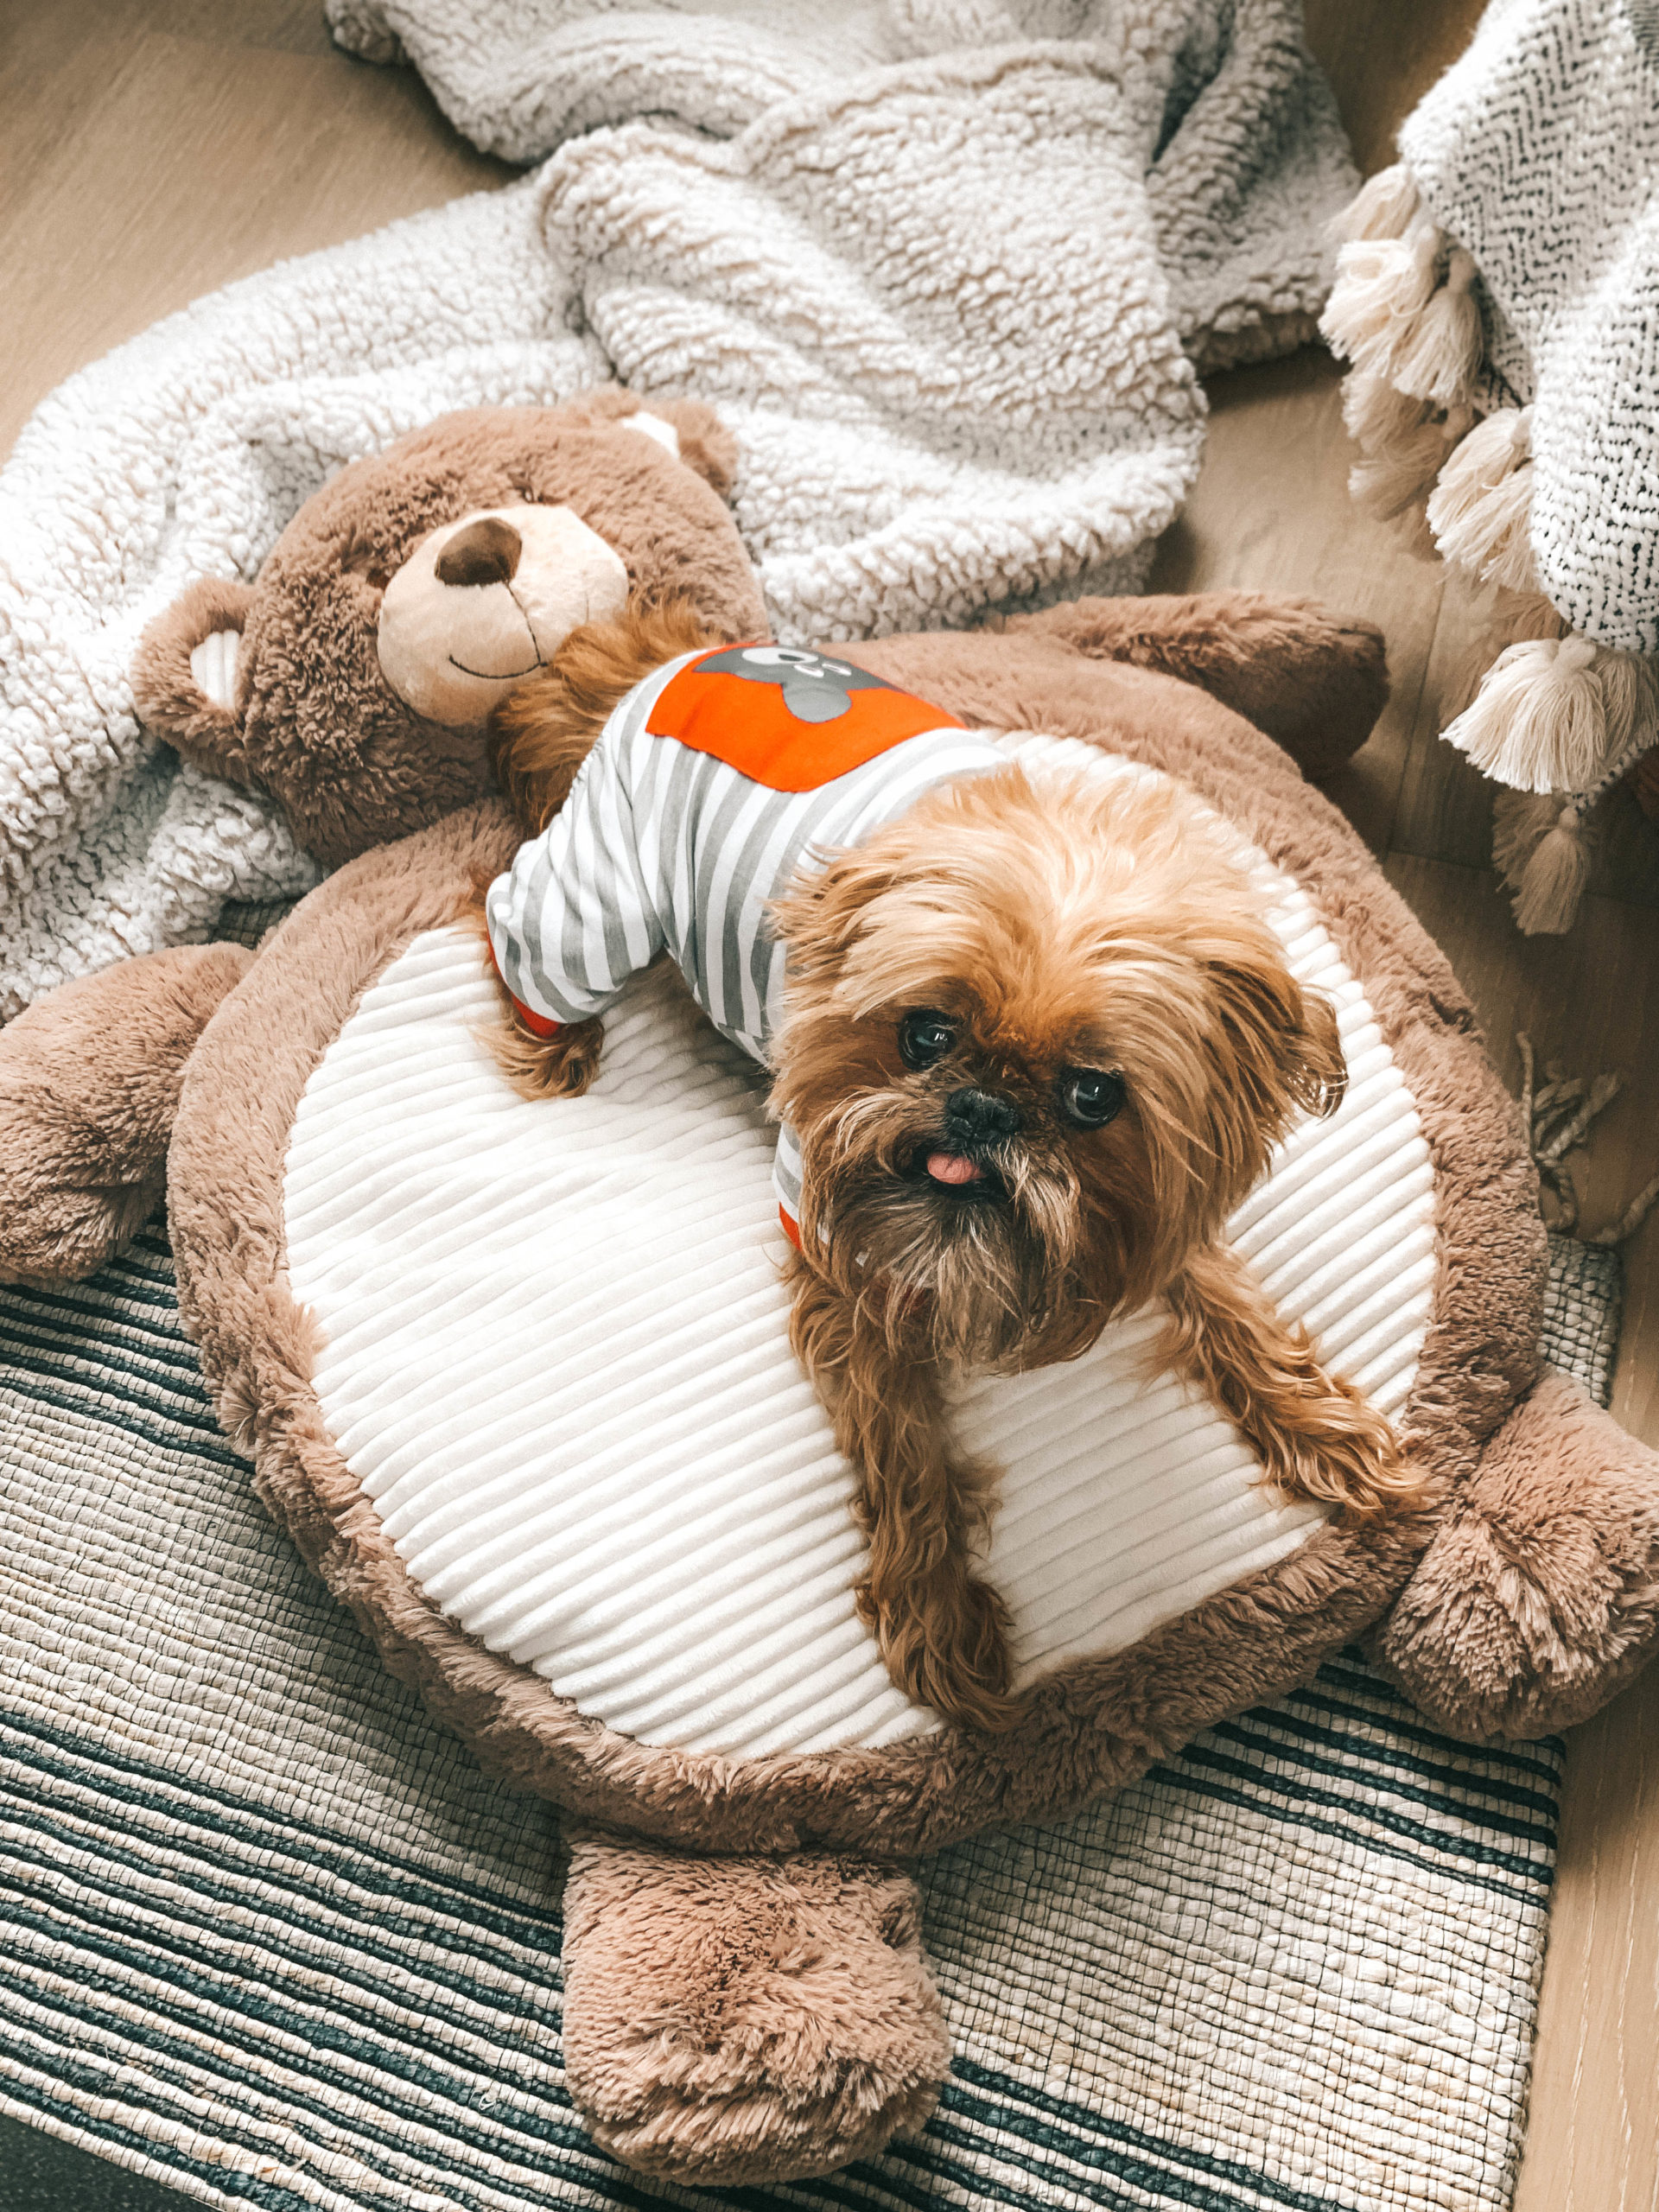 How to Pamper Your Pet by popular Nashville life and style blog, Dressed to Kill: image of a dog wearing a stripped outfit and sitting bear shaped dog bed from Tuesday Morning.